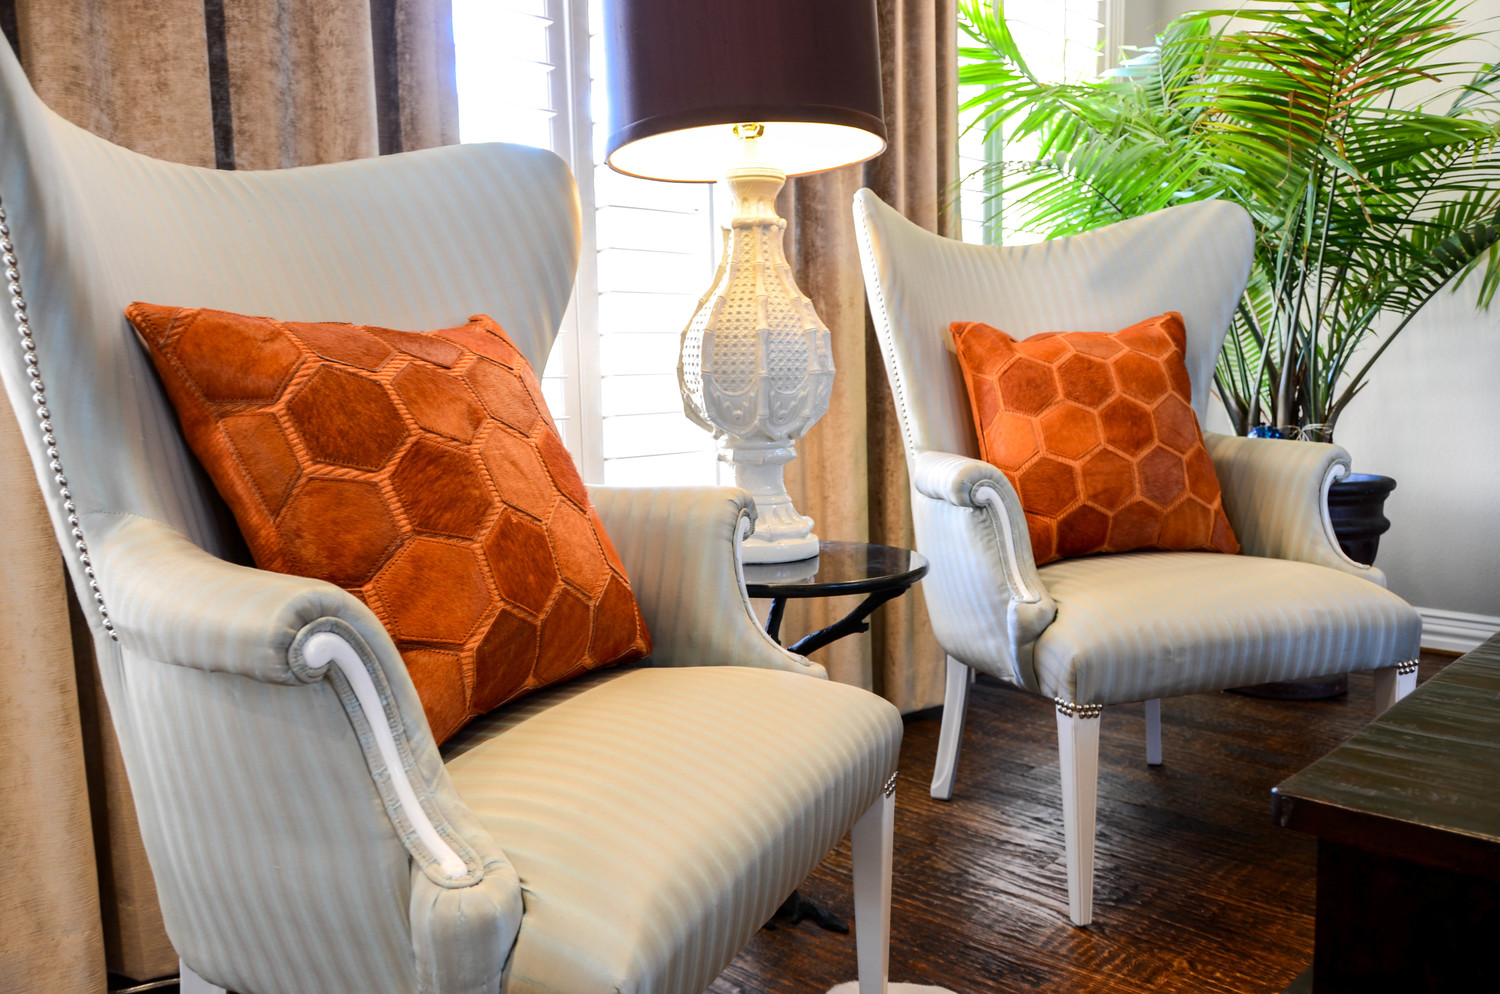 Traditional wing chair that has been updated with new fabric